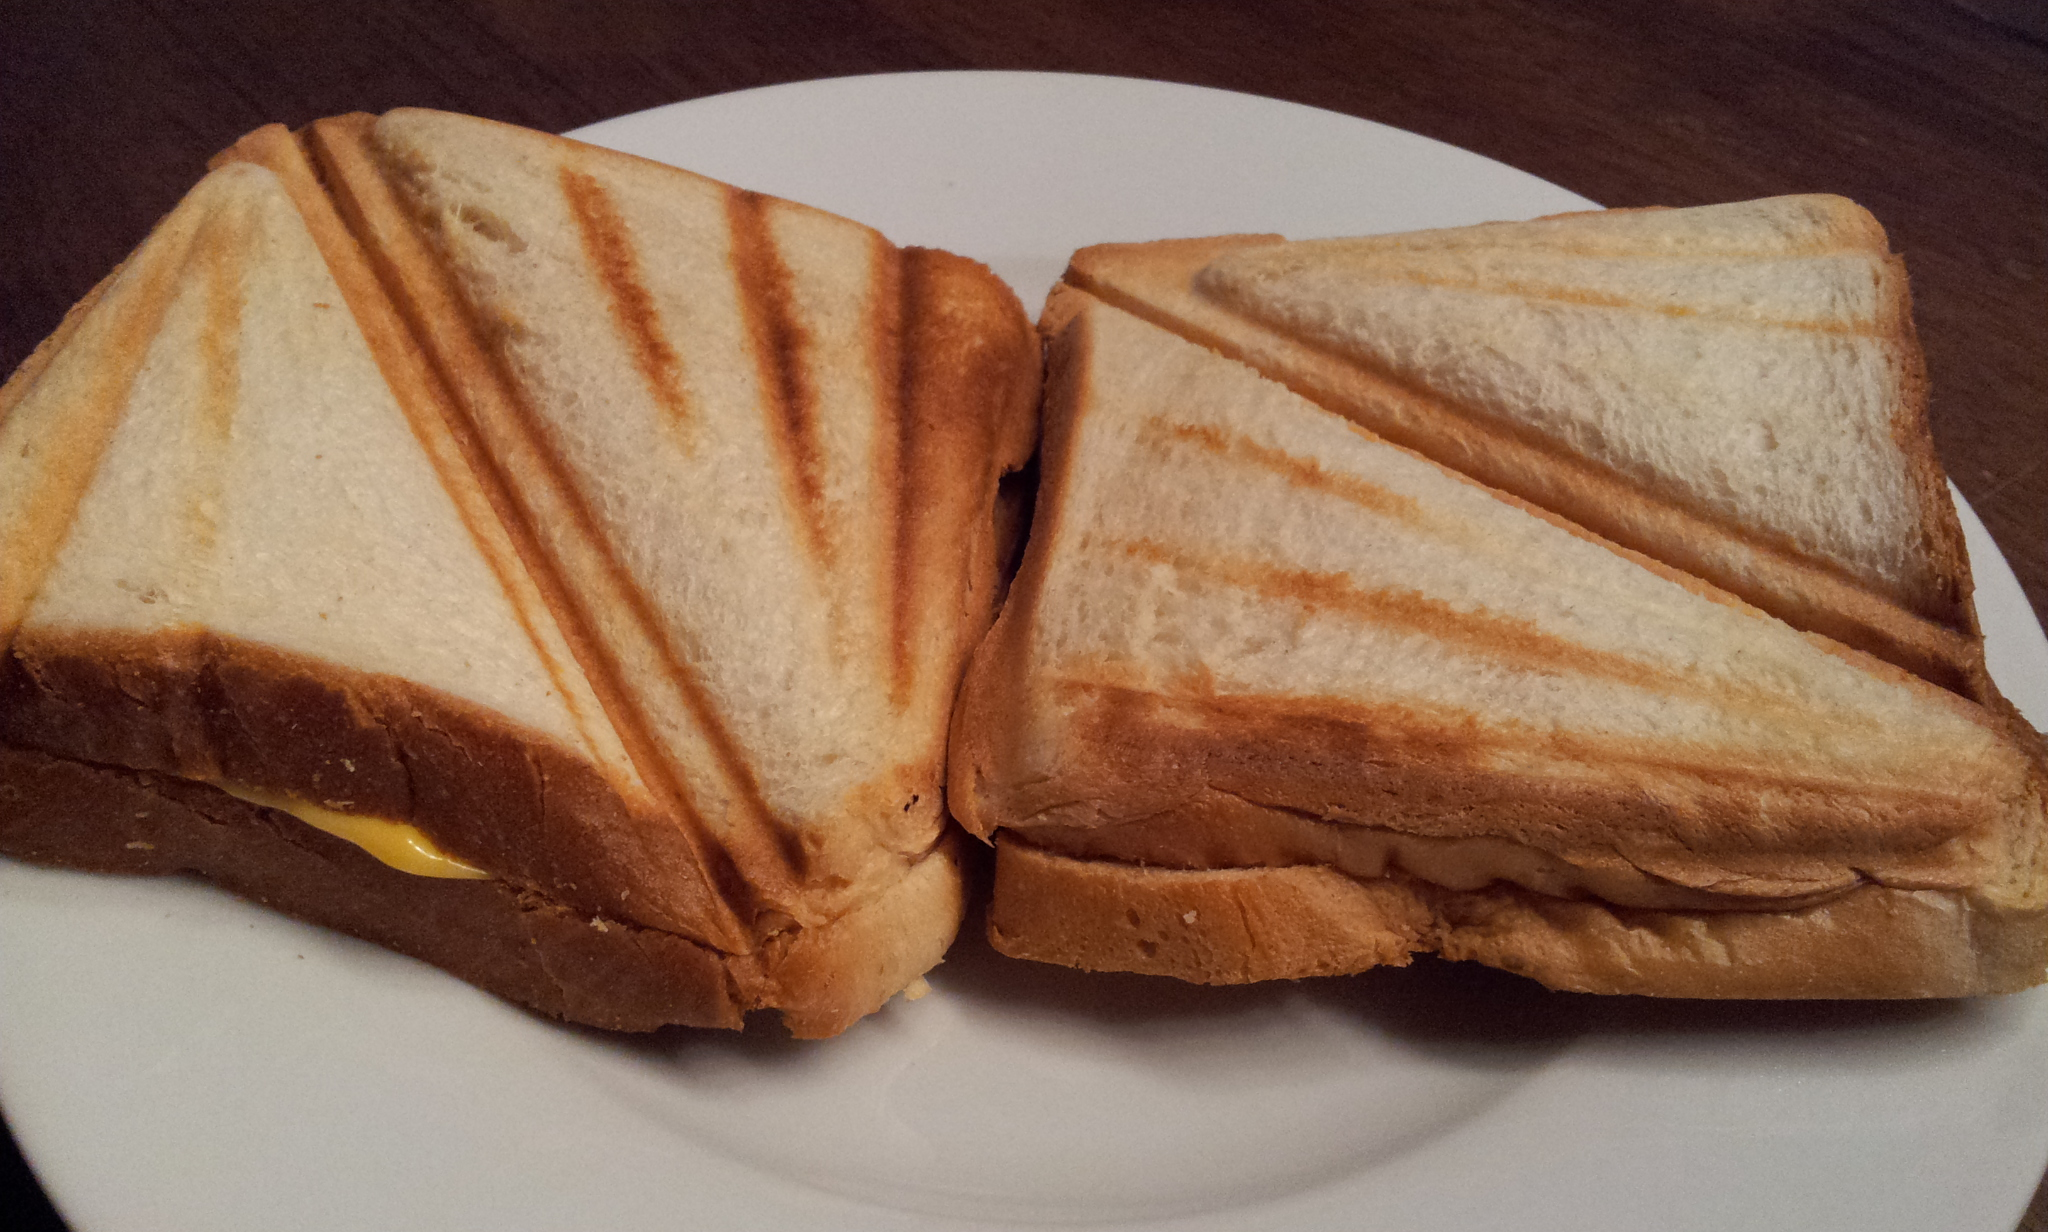 https://foodloader.net/Holz_2012-12-24_Sandwiches.jpg